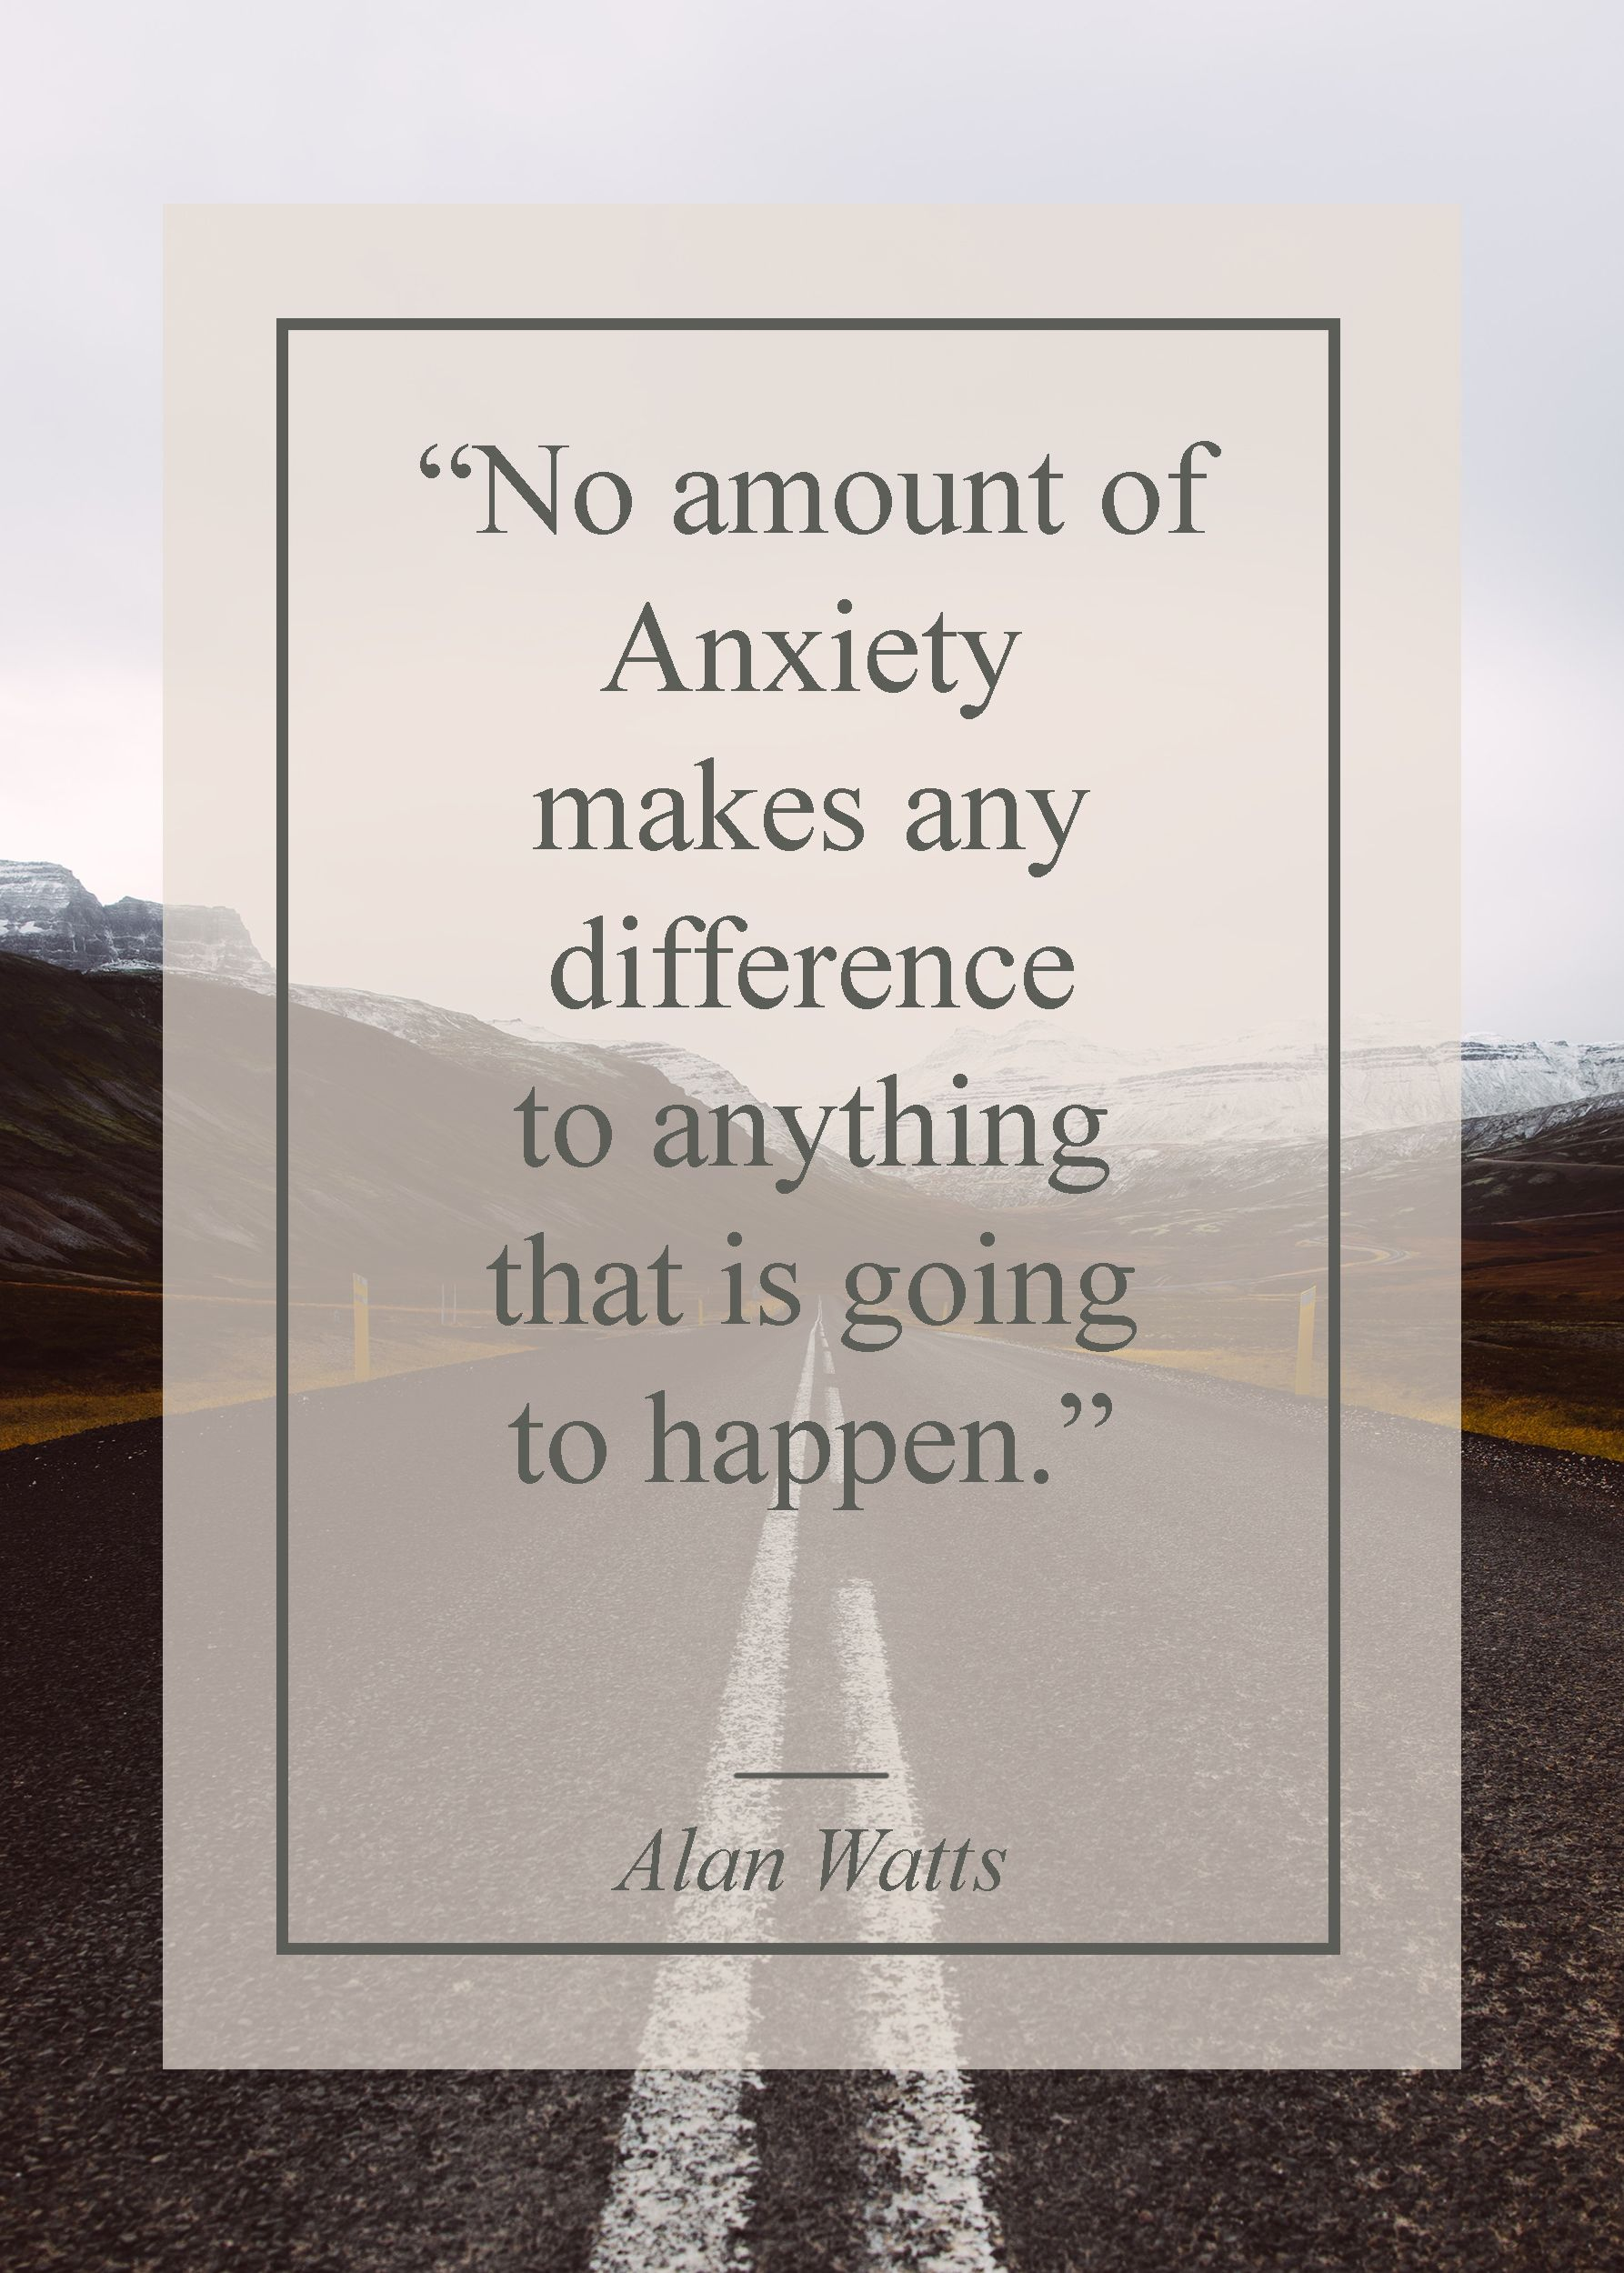 8 Inspirational Alan Watts Quotes